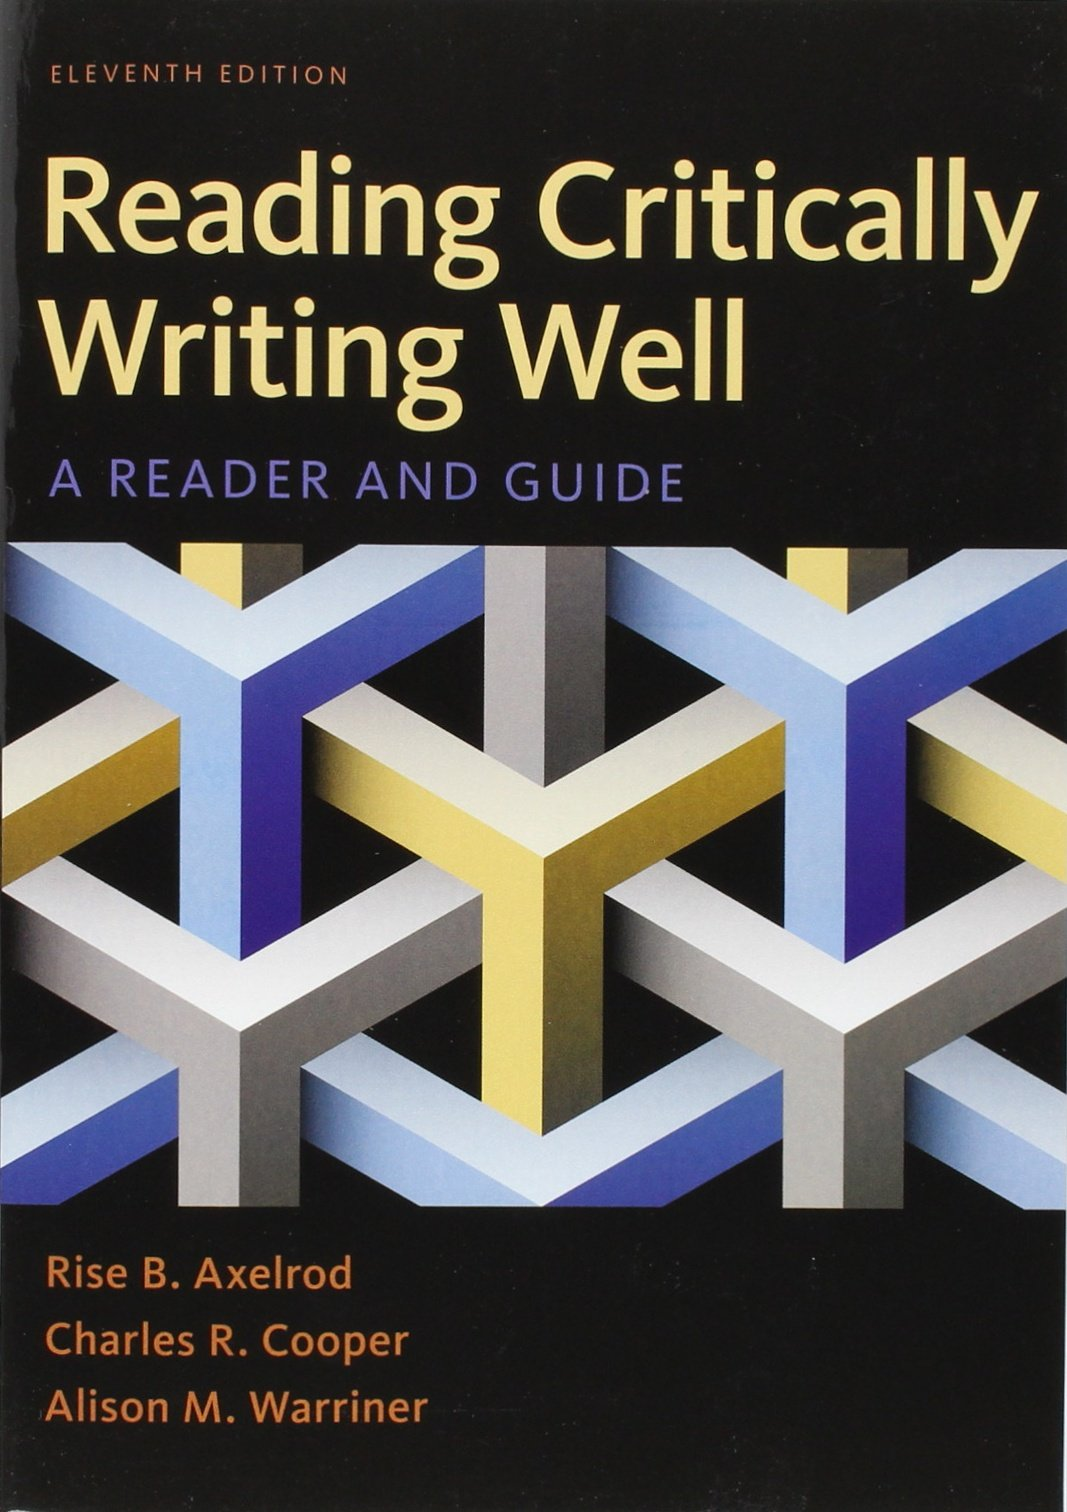 Reading Critically, Writing Well: A Reader and Guide by Bedford/St. Martin's